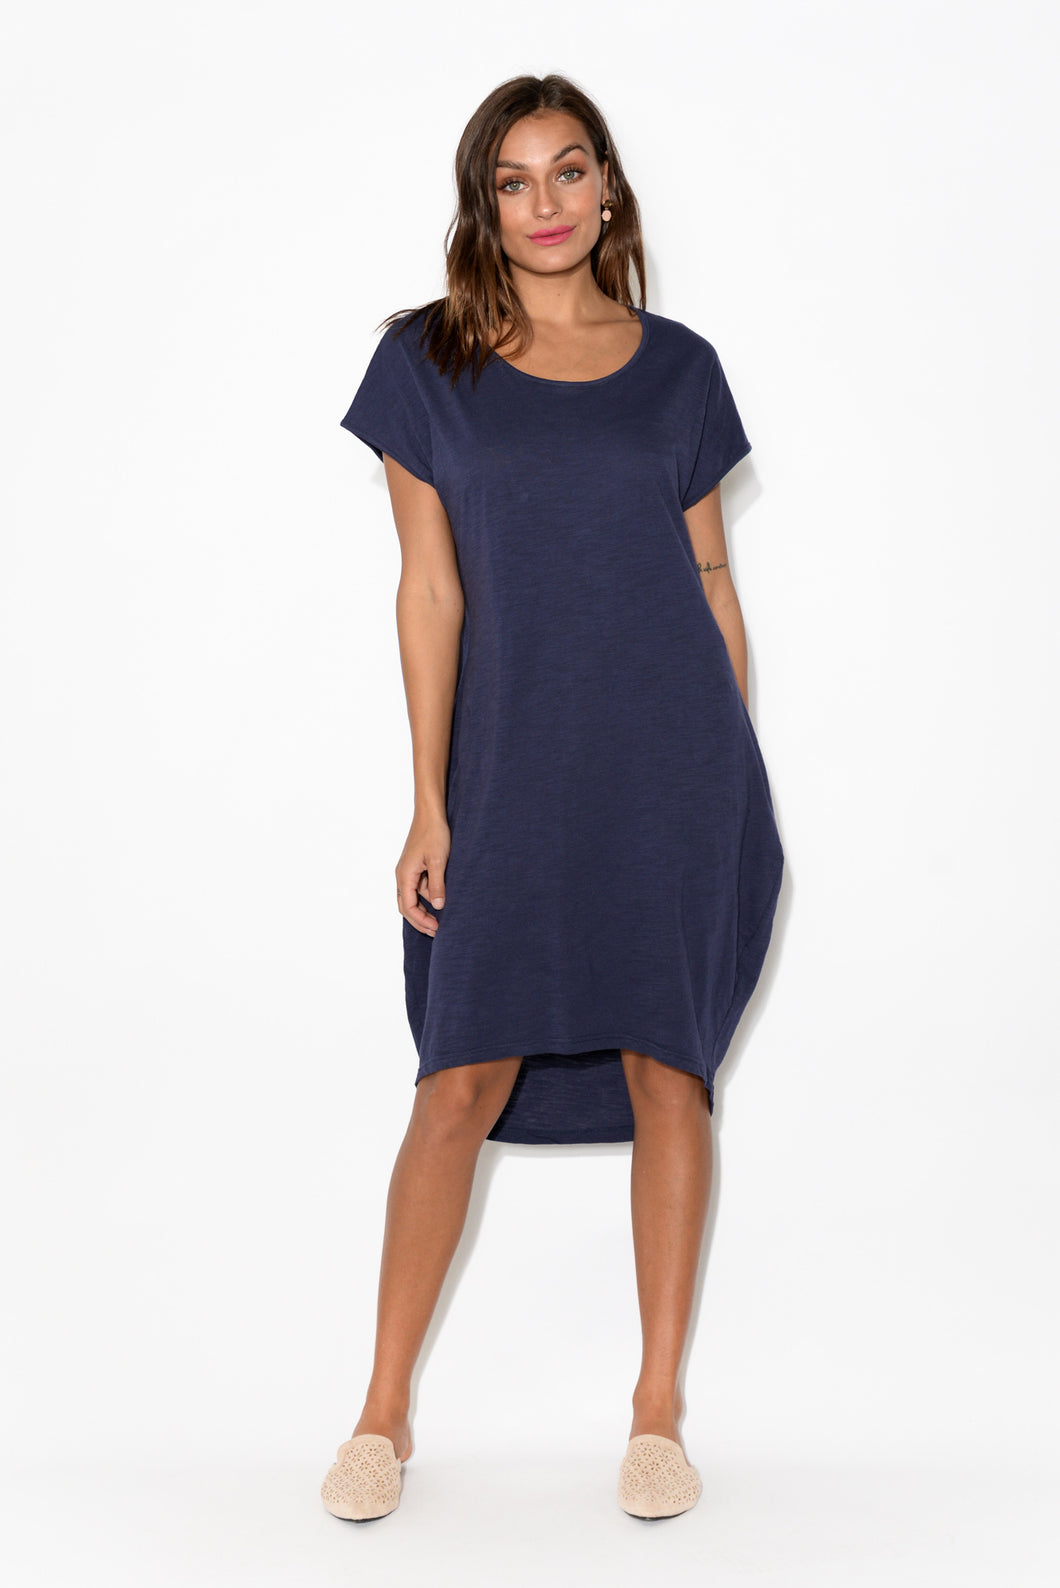 Santos Navy Cotton Slub Tulip Dress